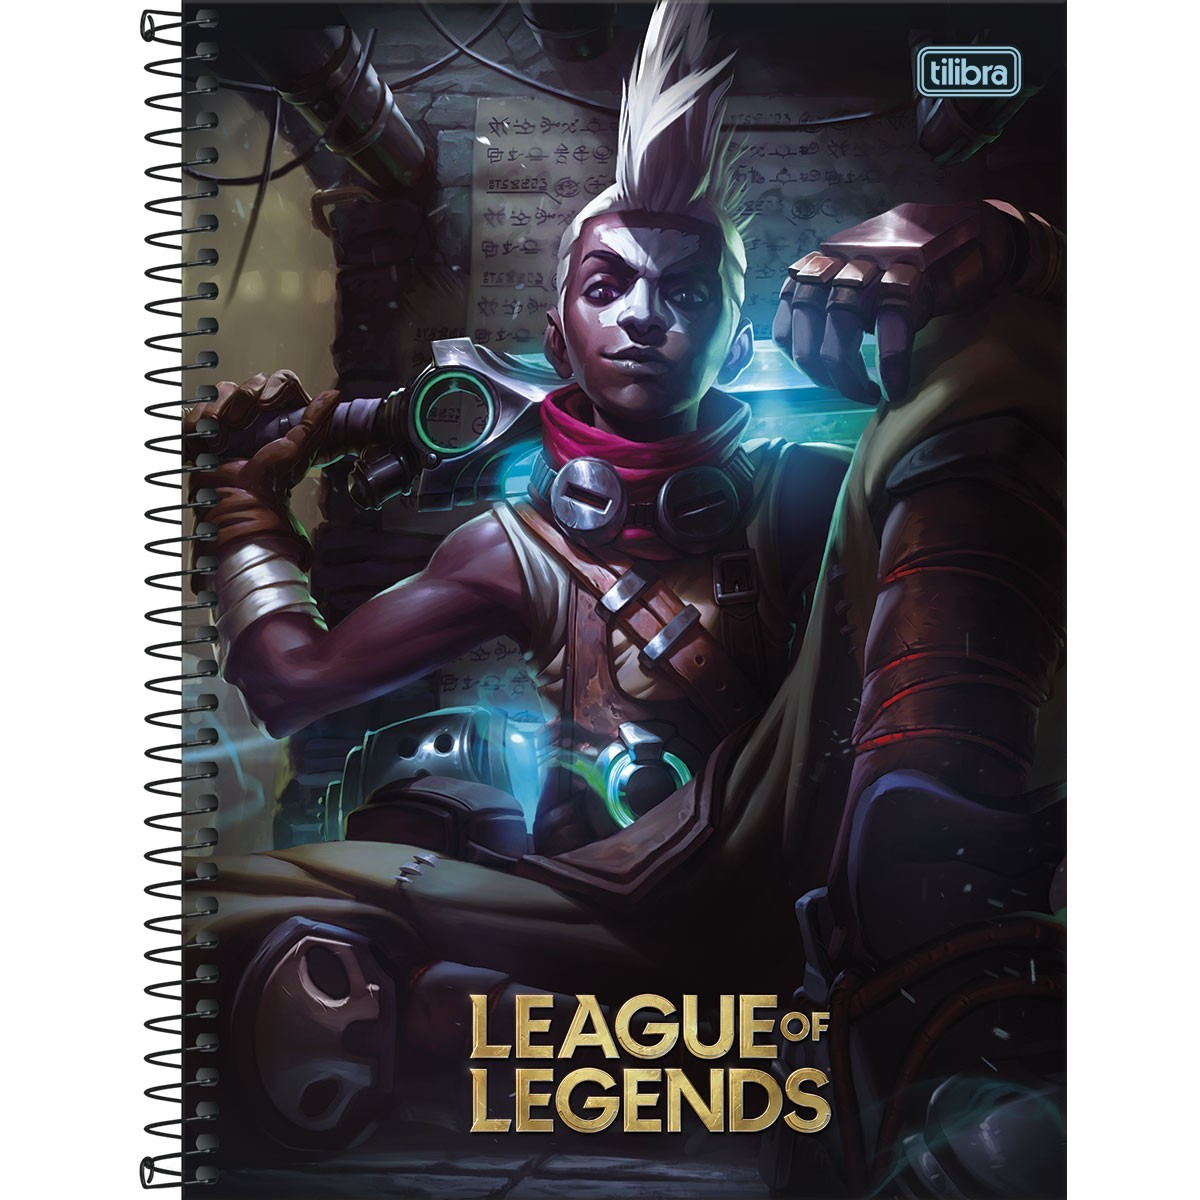 Caderno Espiral Capa Dura Universitário 16 Matérias League of Legends Tresh Ekko 256 Folhas